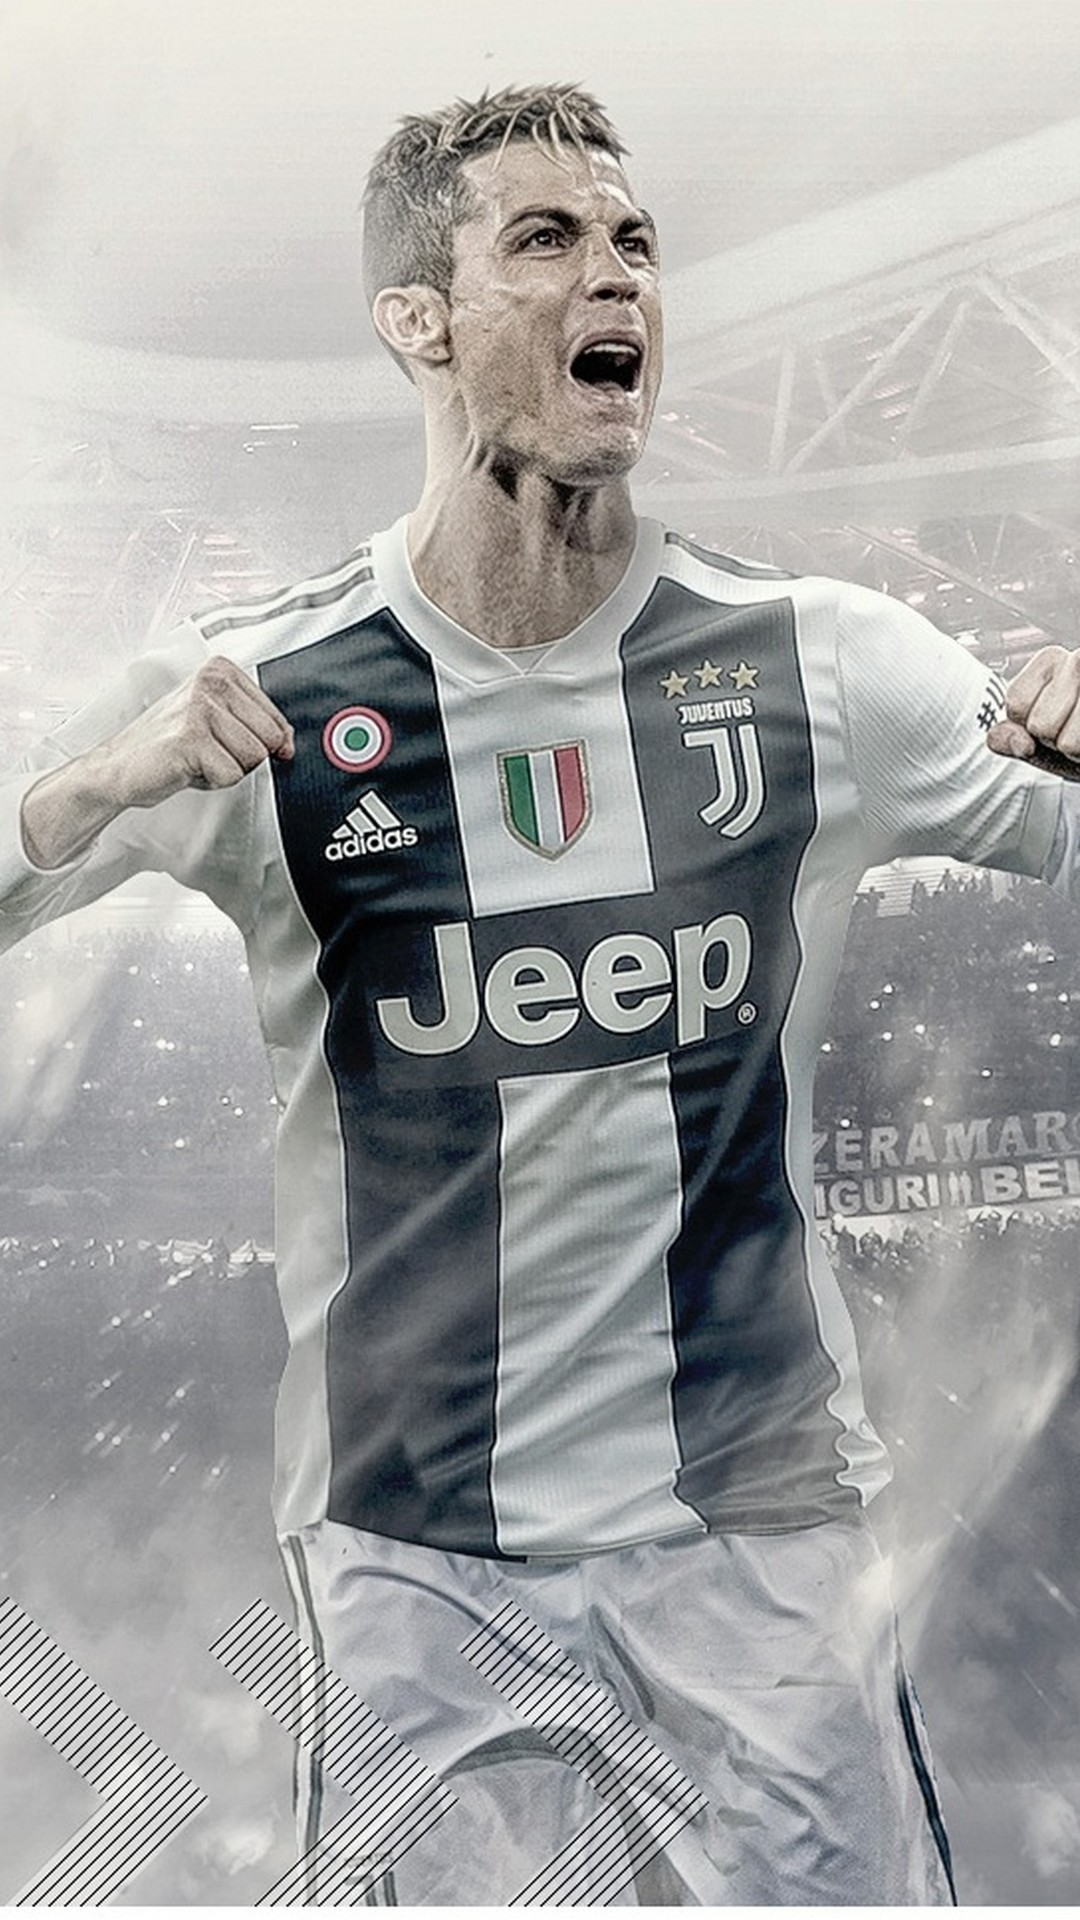 Wallpaper Android Cristiano Ronaldo Juventus   2020 Android Wallpapers 1080x1920